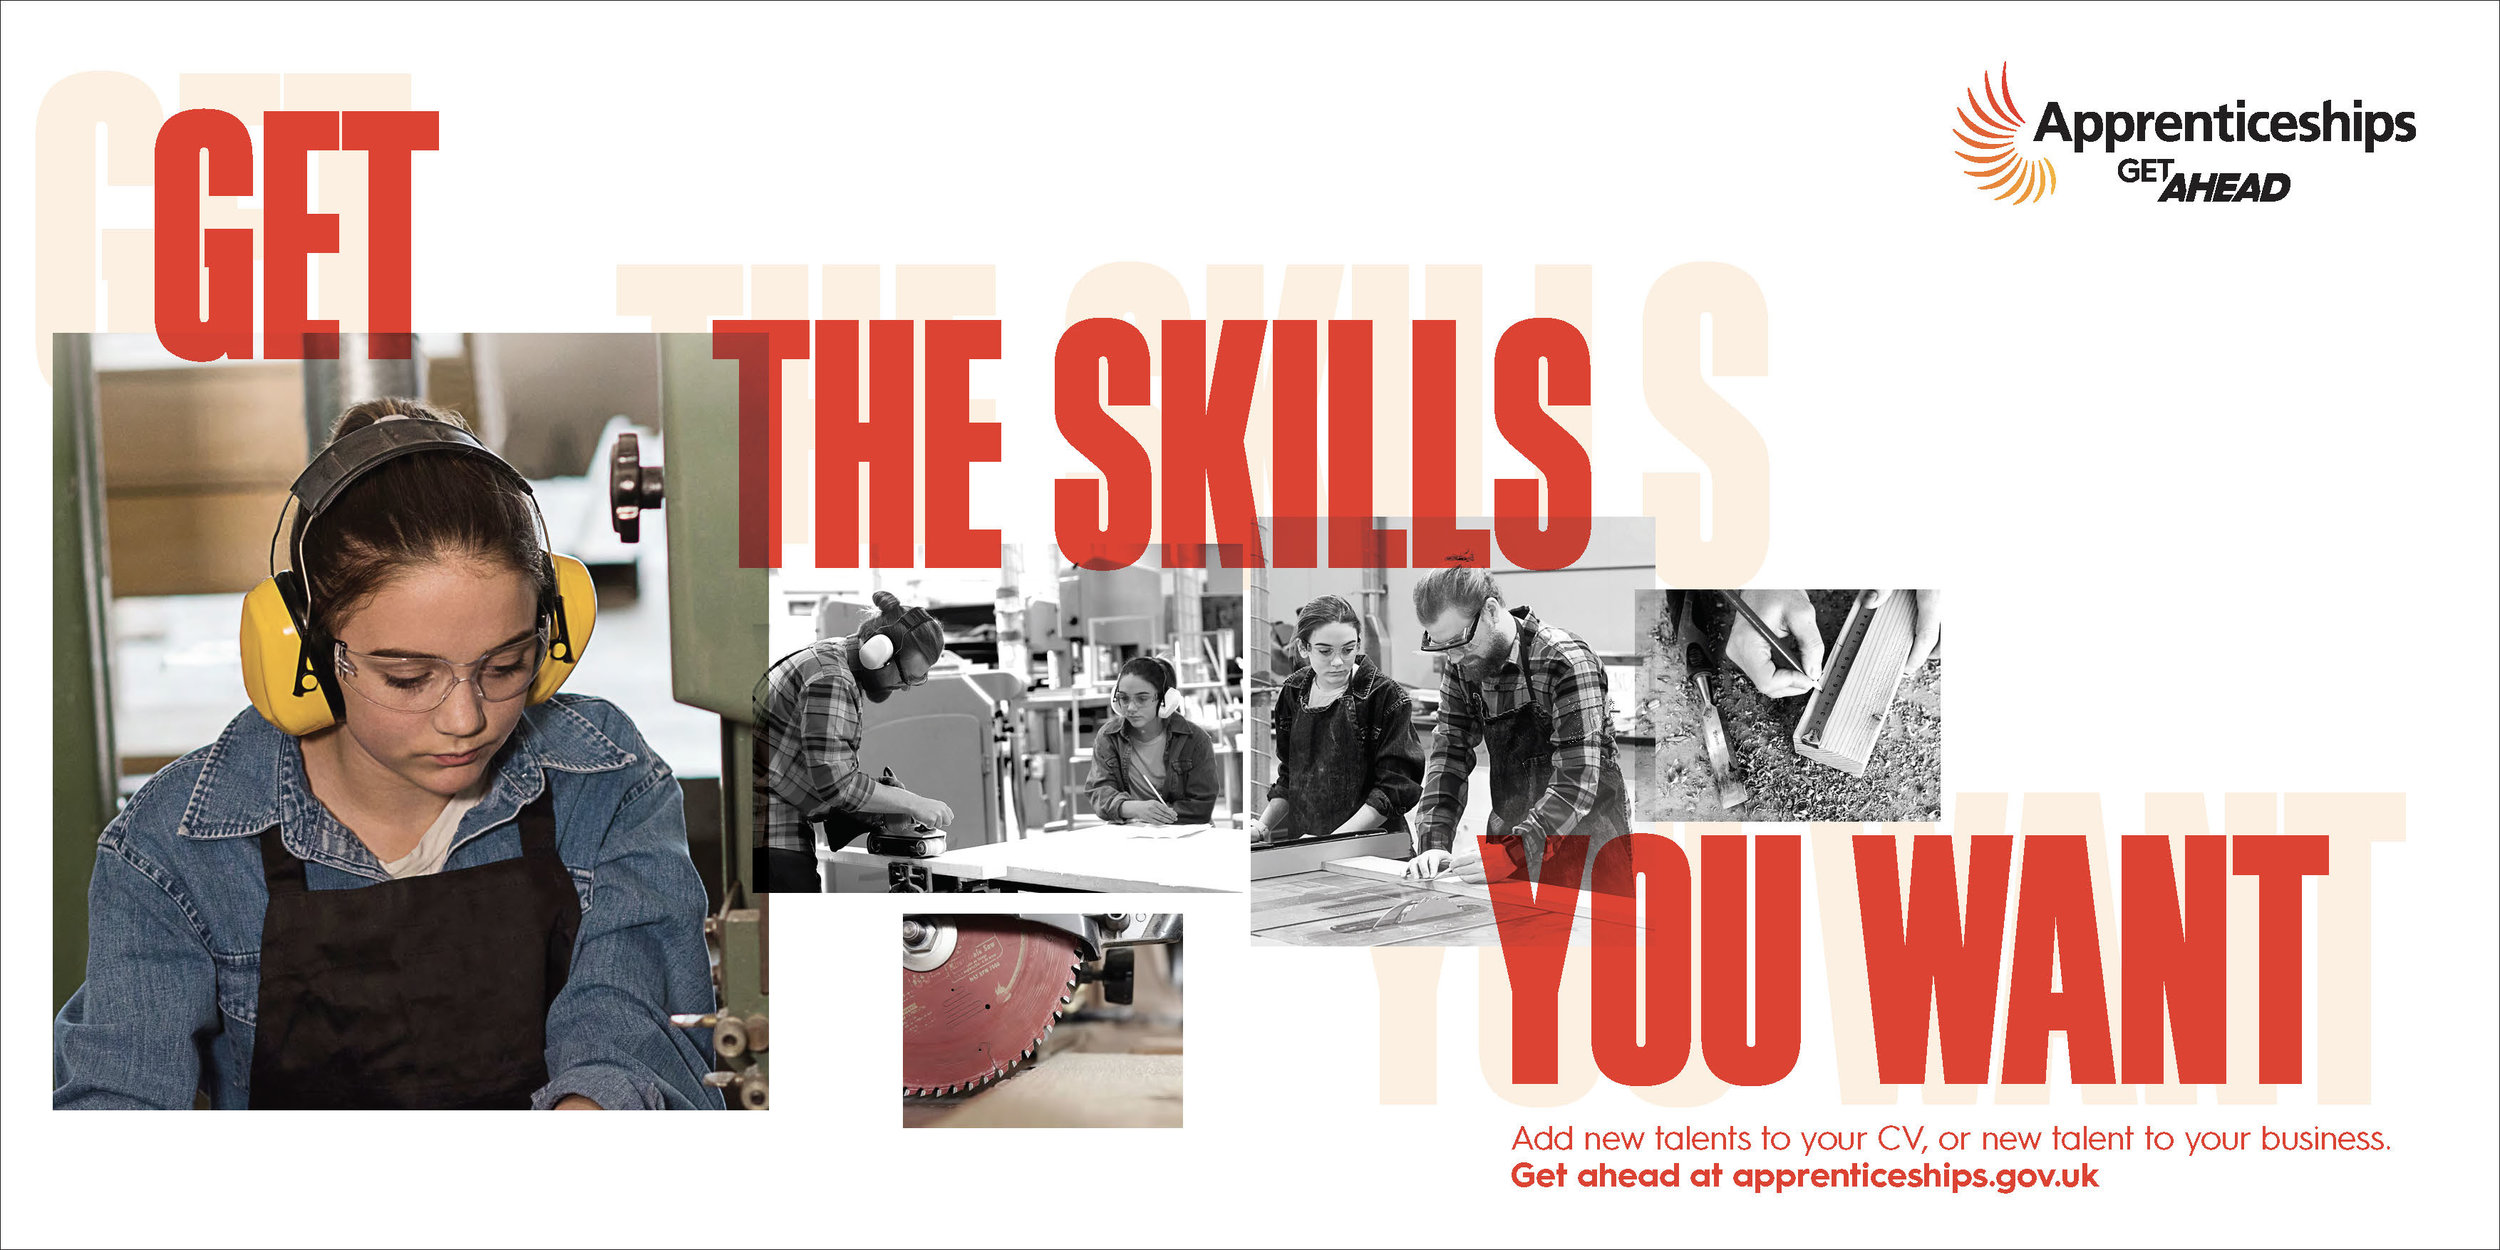 114905-Apprenticeships-48-Sheets-v4_Comments_Page_1_3508.jpg